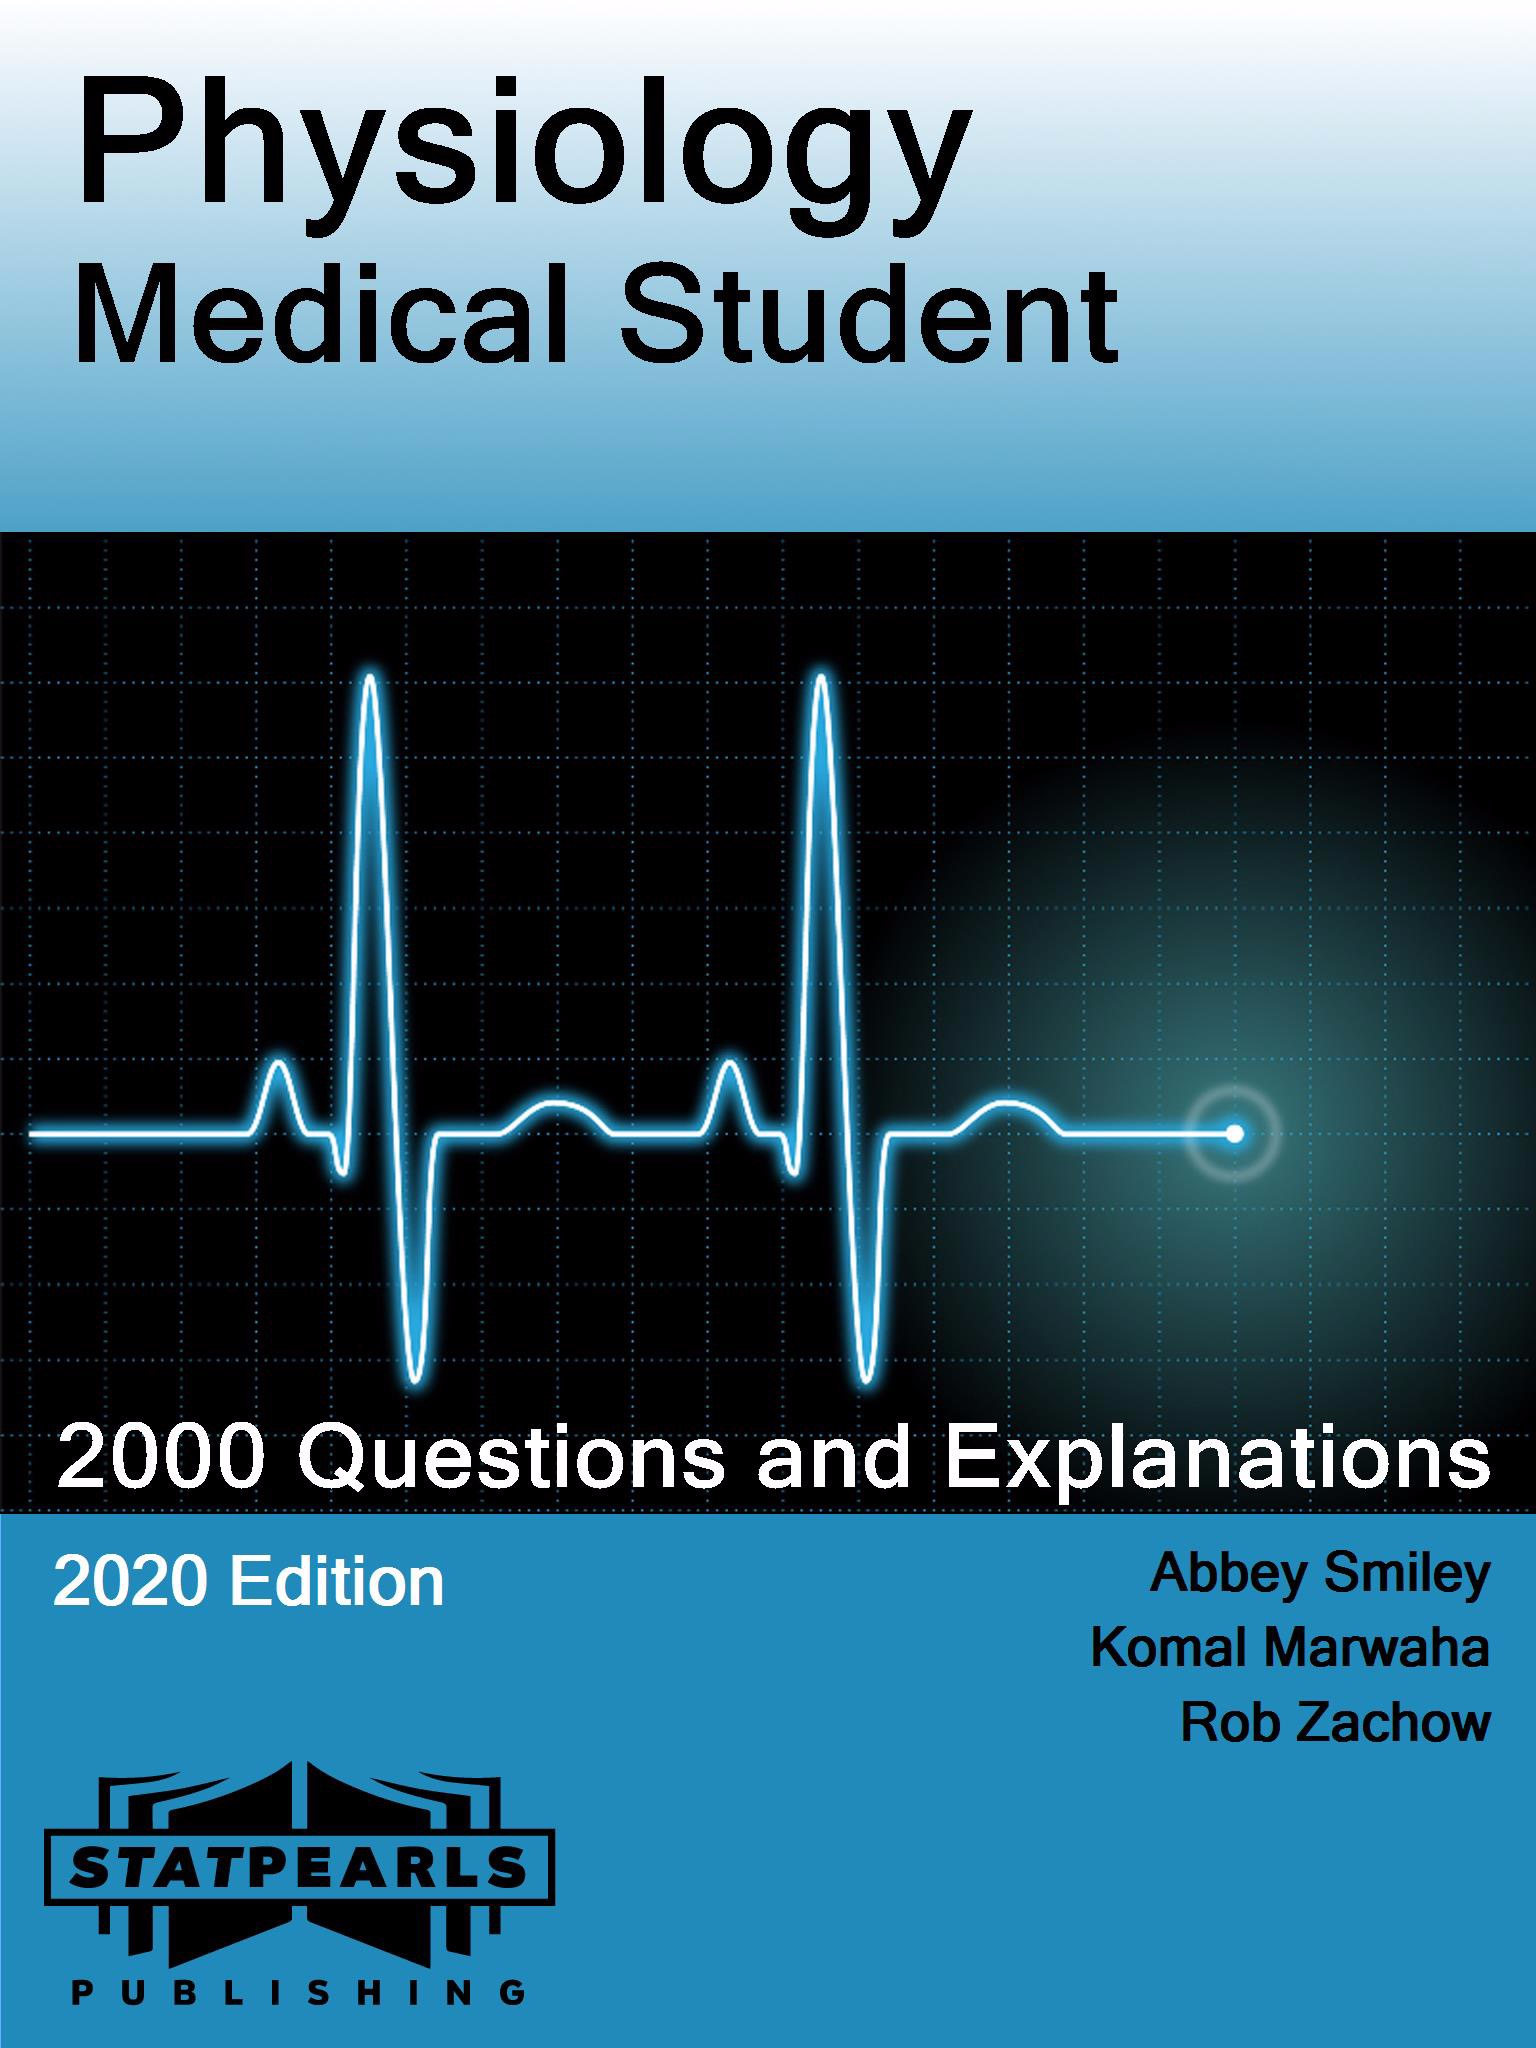 Physiology Medical Student